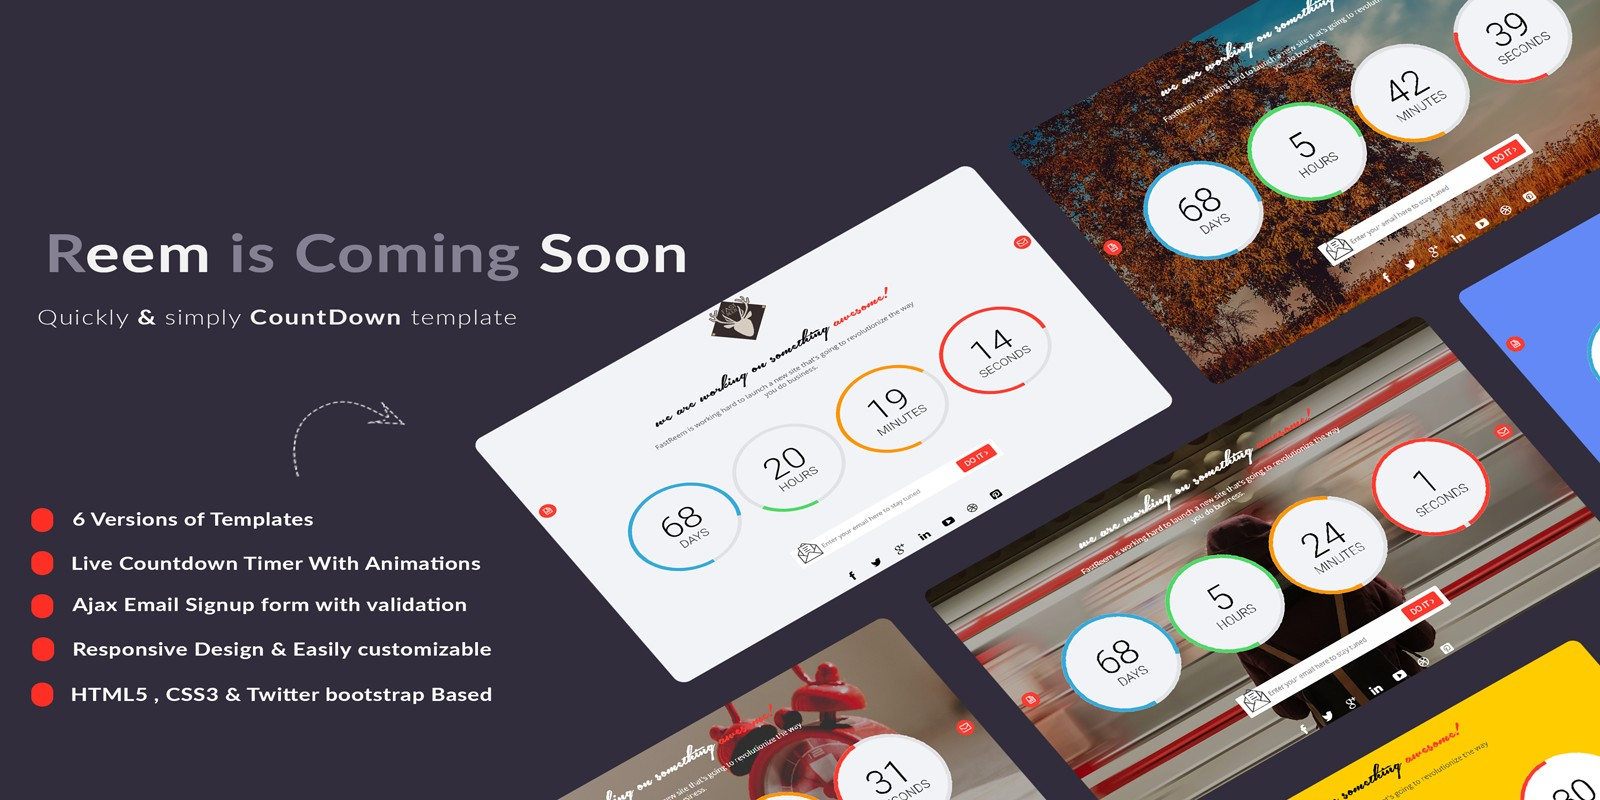 Fastreem - Coming Soon Countdown Template